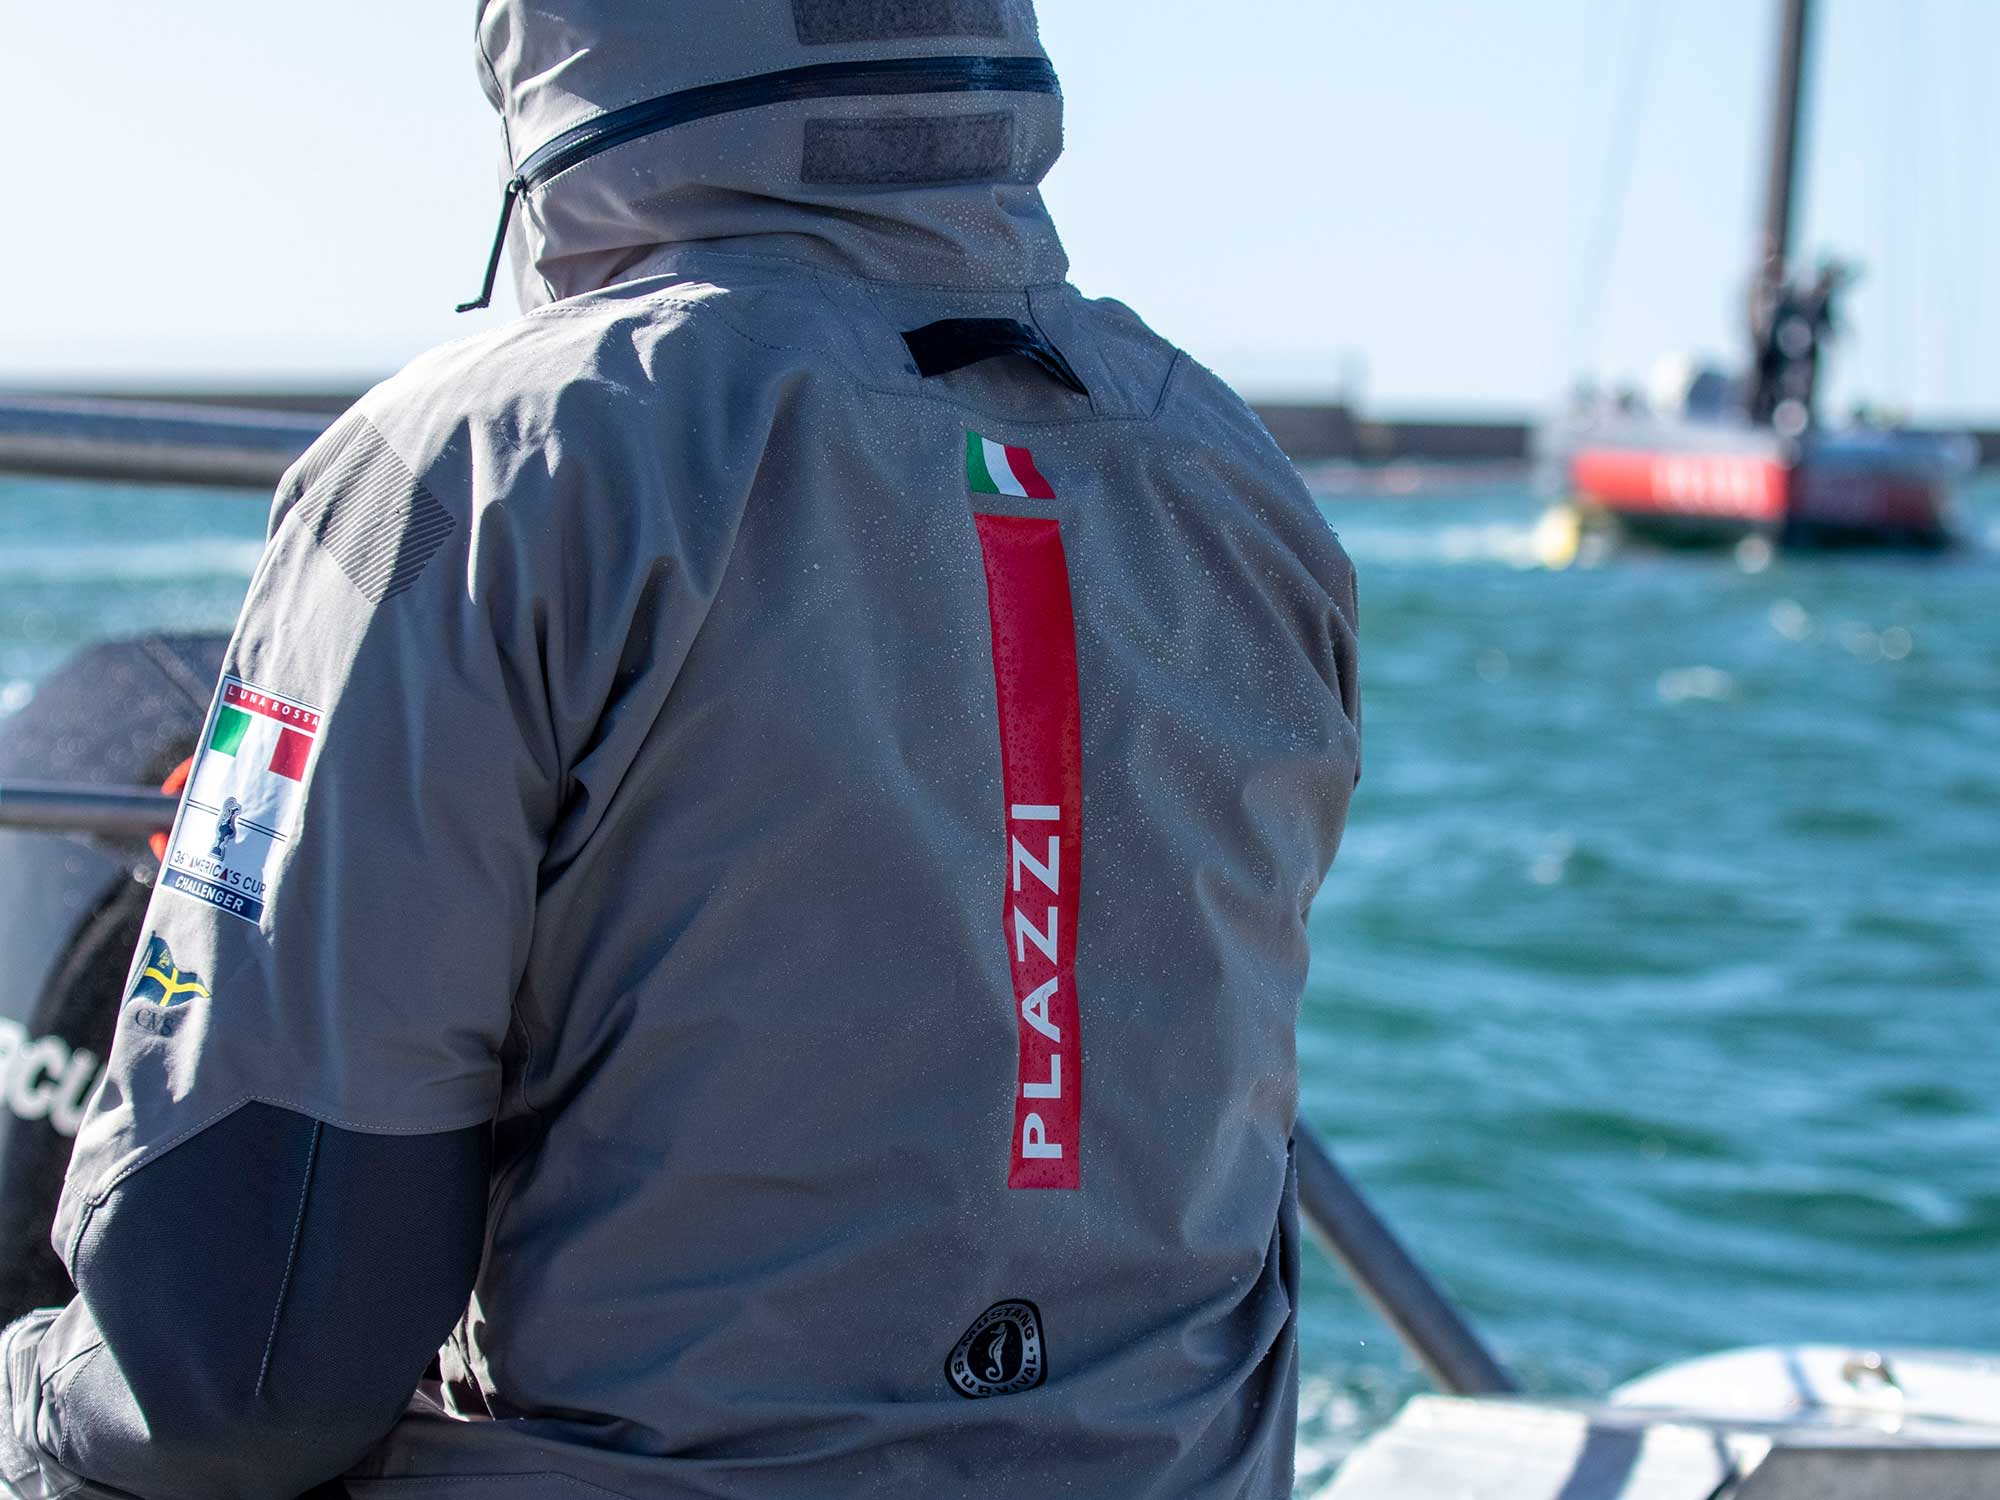 Mustang Survival EP Ocean Racing Jacket. Offshore protective gear for the Support team.